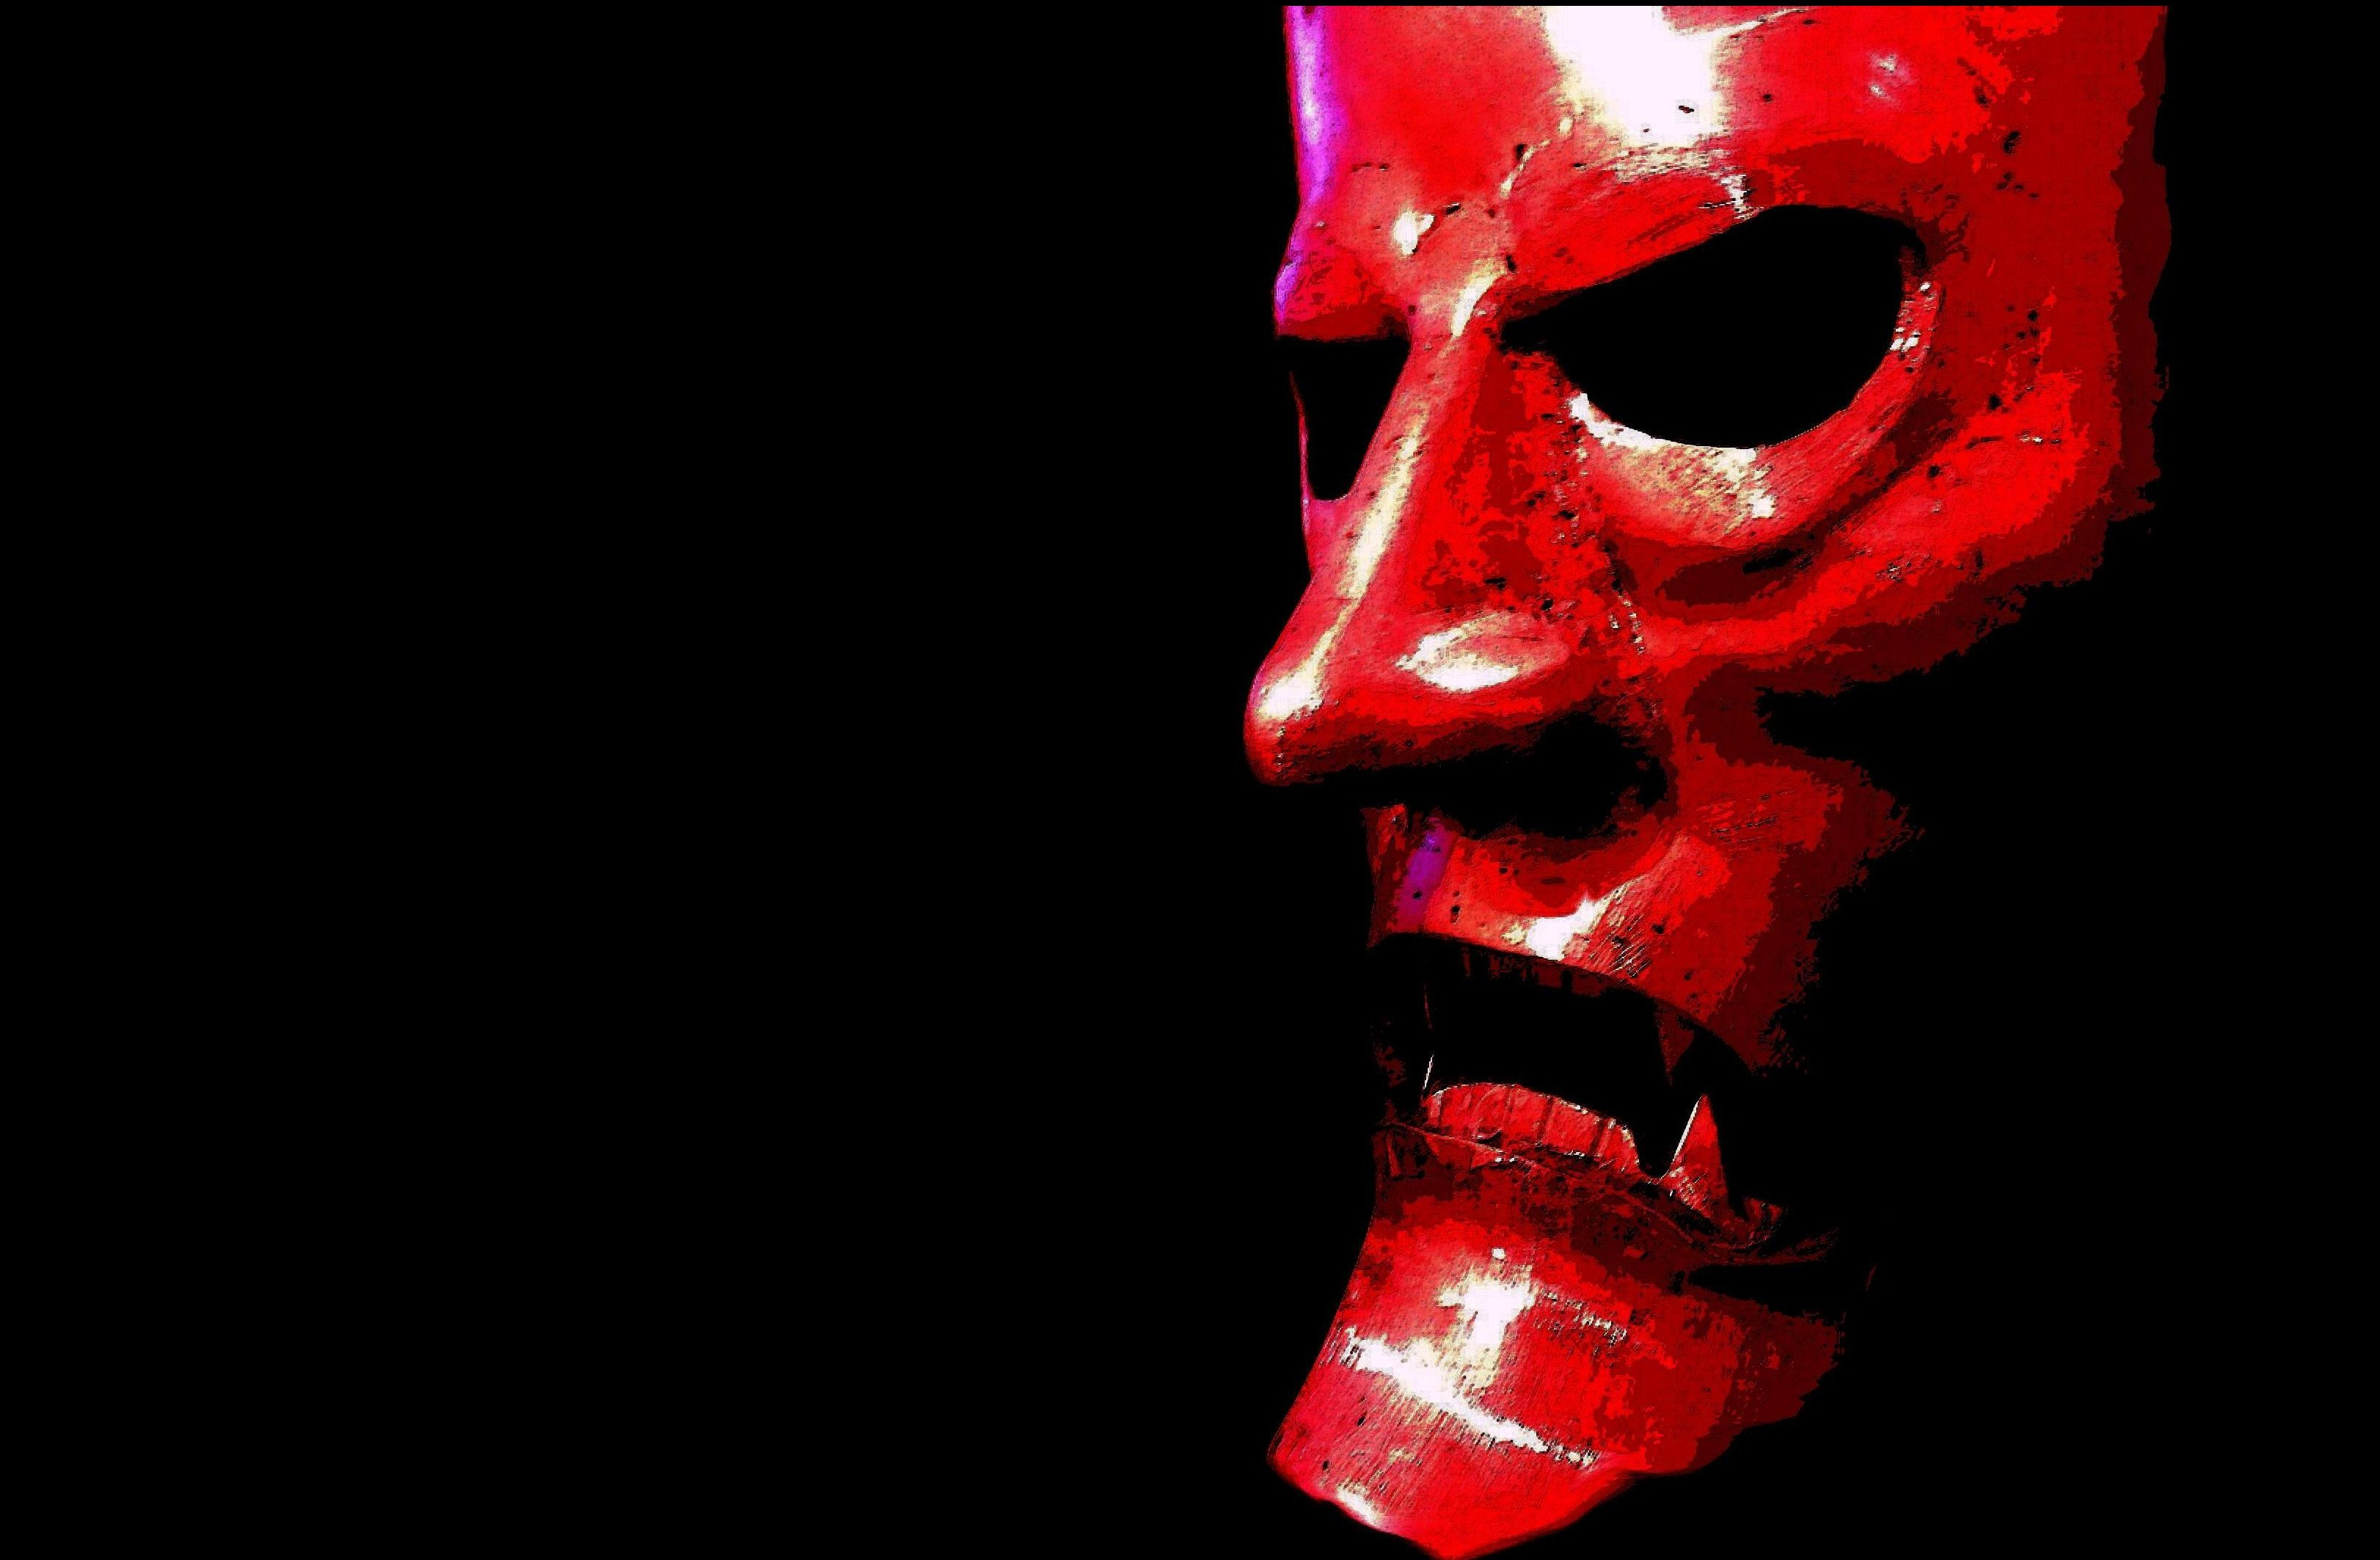 Devil Hd Wallpaper Devil Hd 178991 Hd Wallpaper